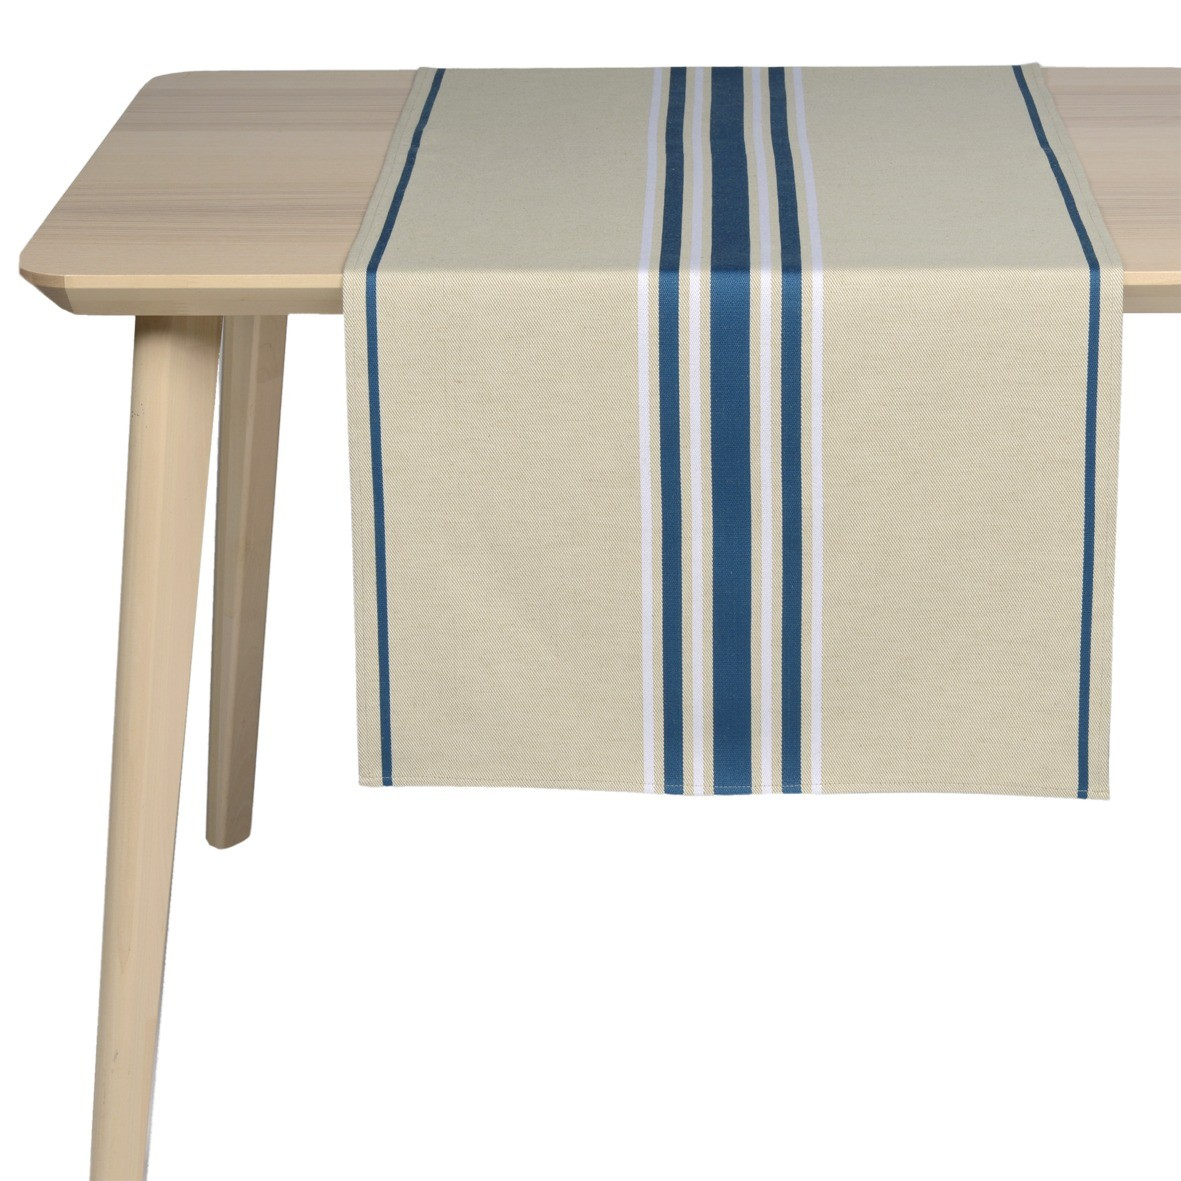 Jeté de table – Corda Bleu